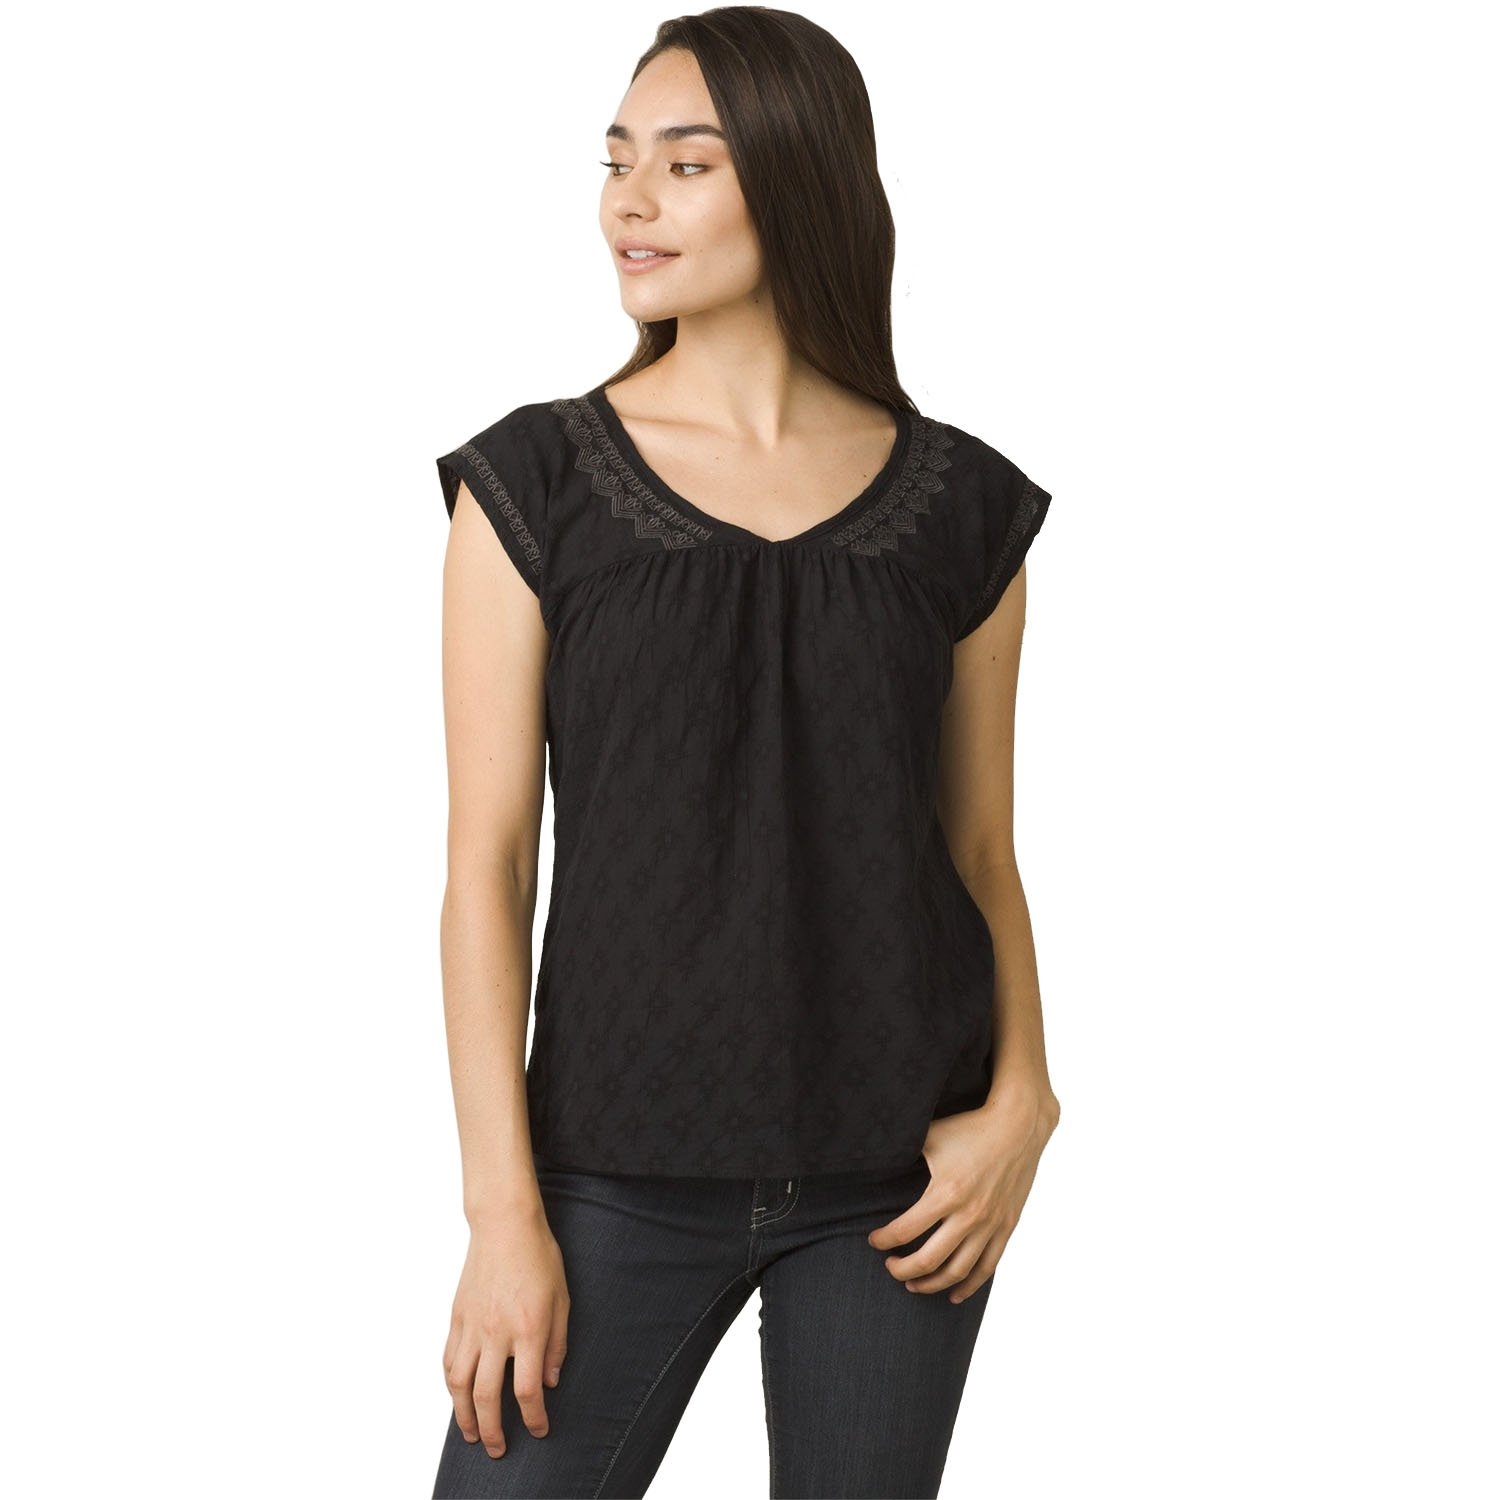 0efc29476af1 V-neck cap sleeve with empire waist, keyhole back neck closure and  embroidery detail. Relaxed fit